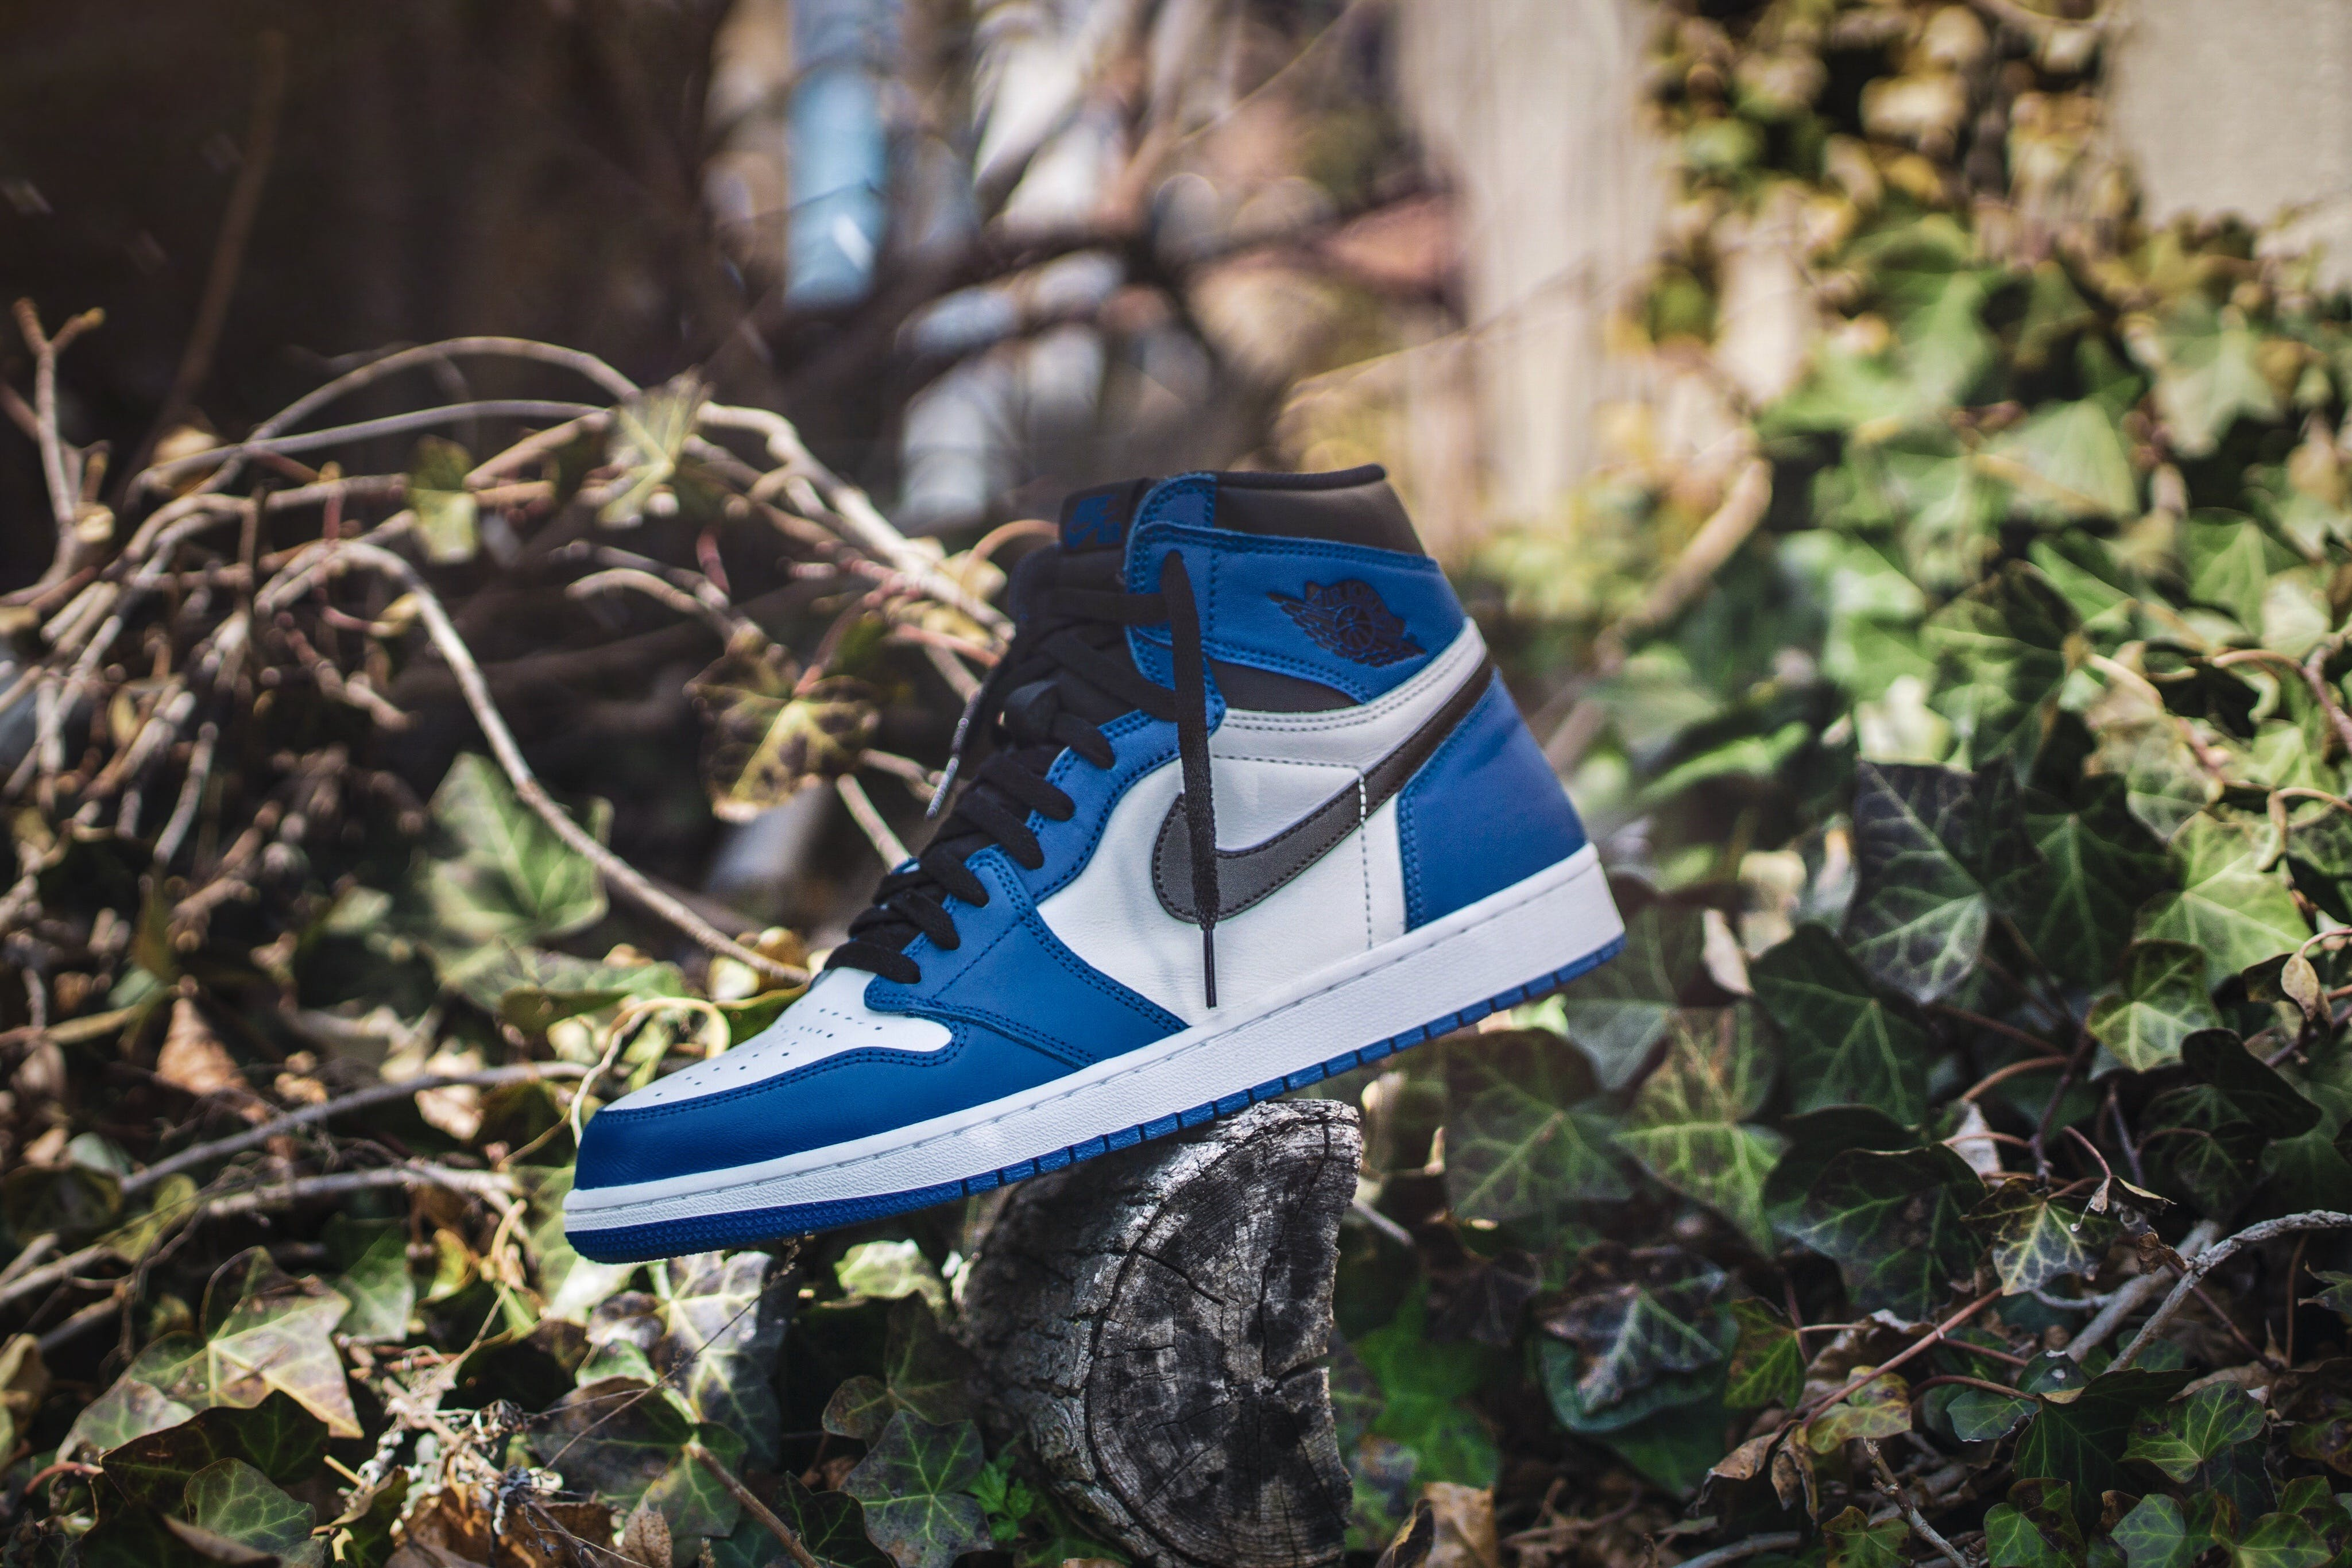 Blue and White Air Jordan 1 on Gray Wood Log at Daytime